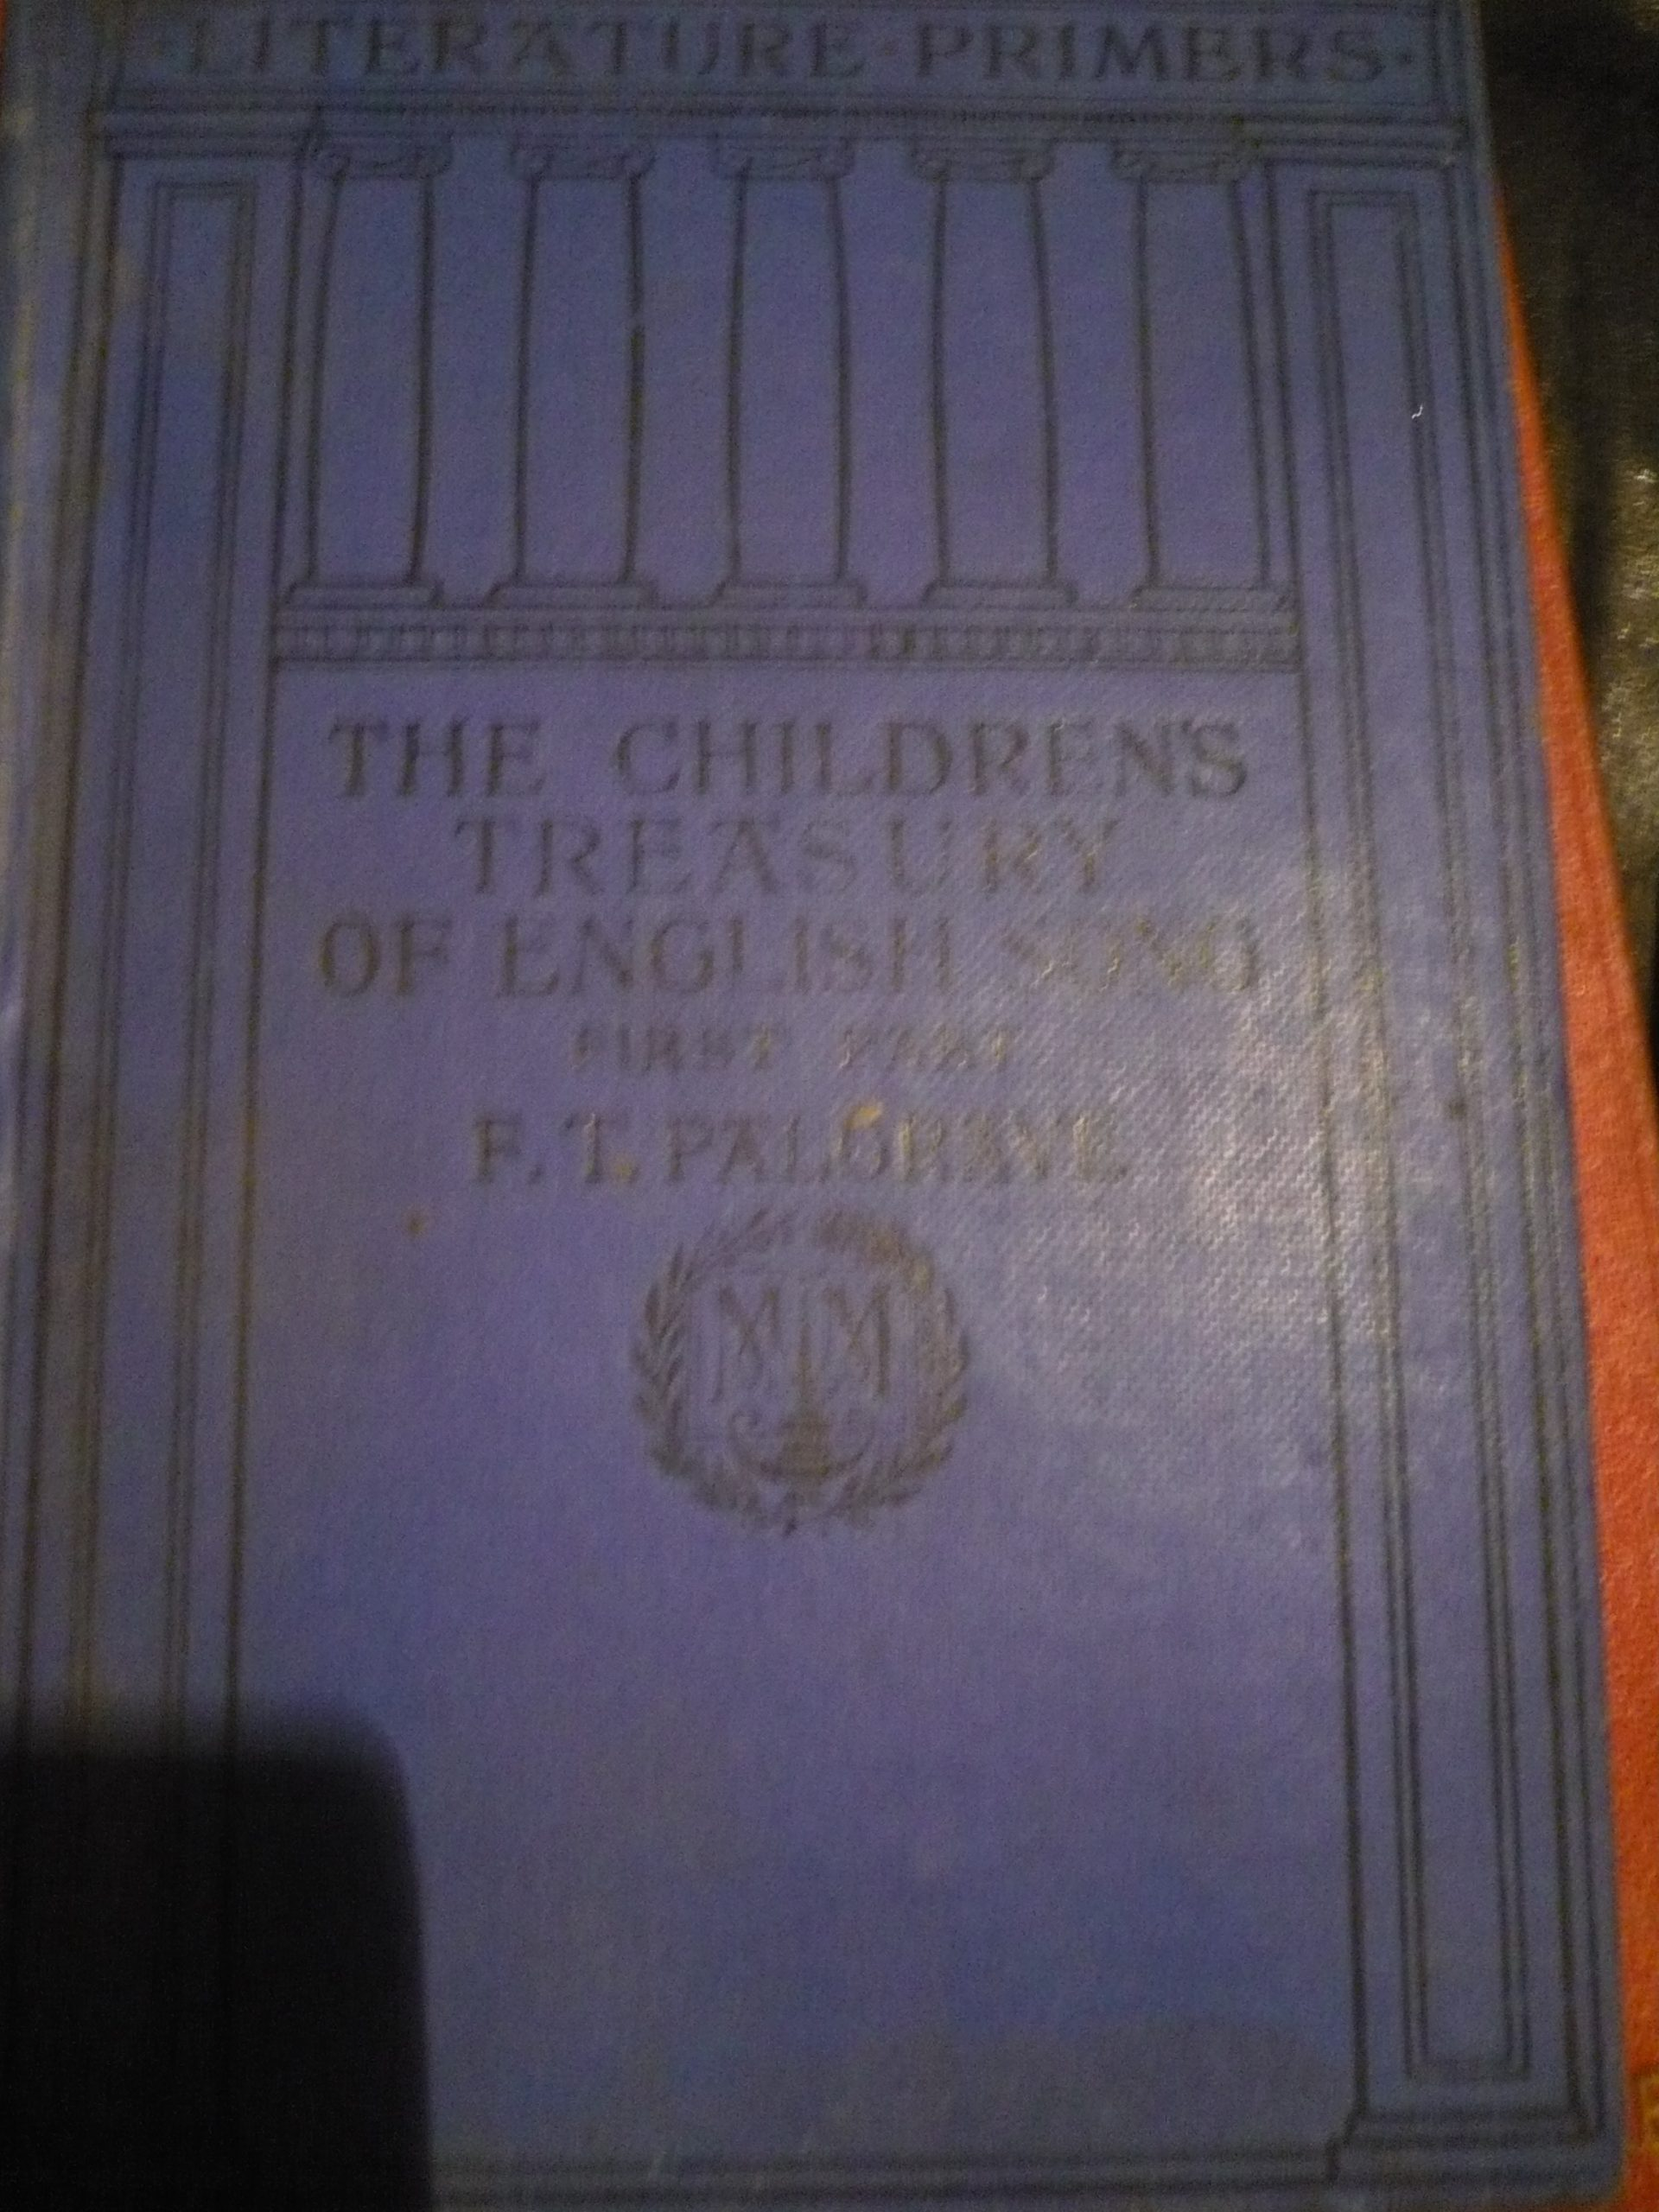 The children's treasury of English song by Francis Turner Palgrave/1910 basım/20 tl